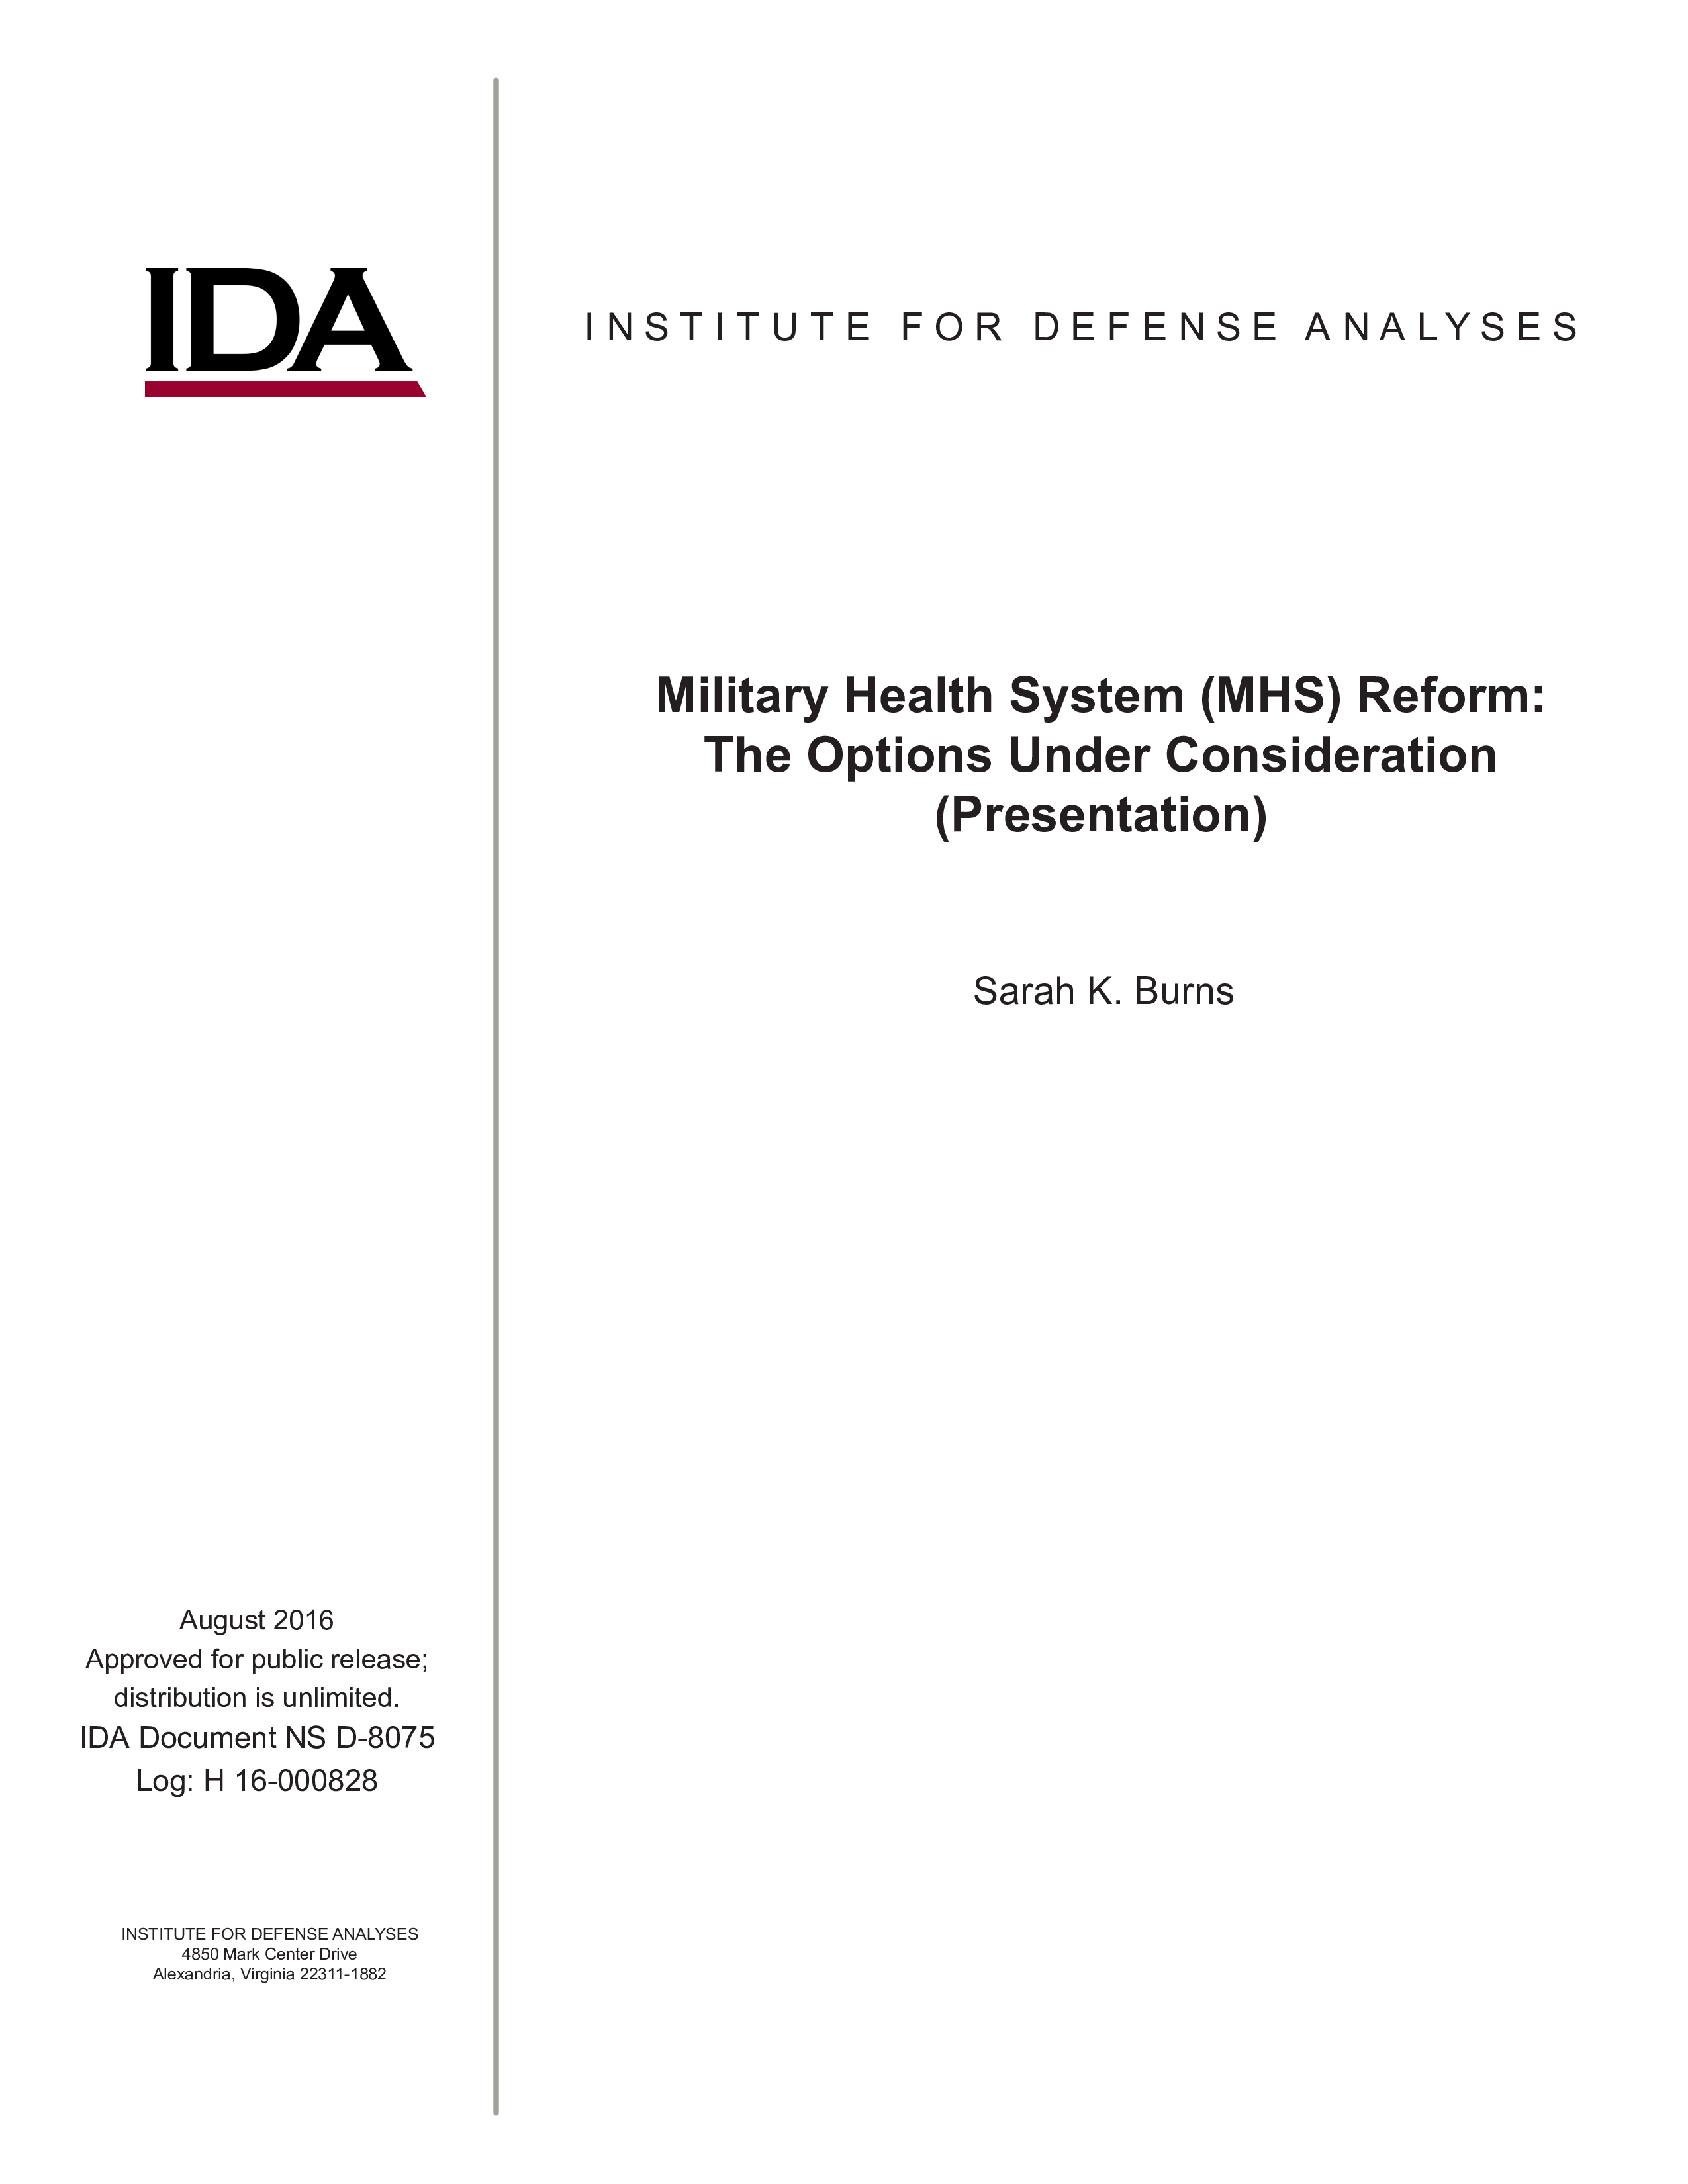 Military Health System (MHS) Reform: The Options Under Consideration (Presentation)